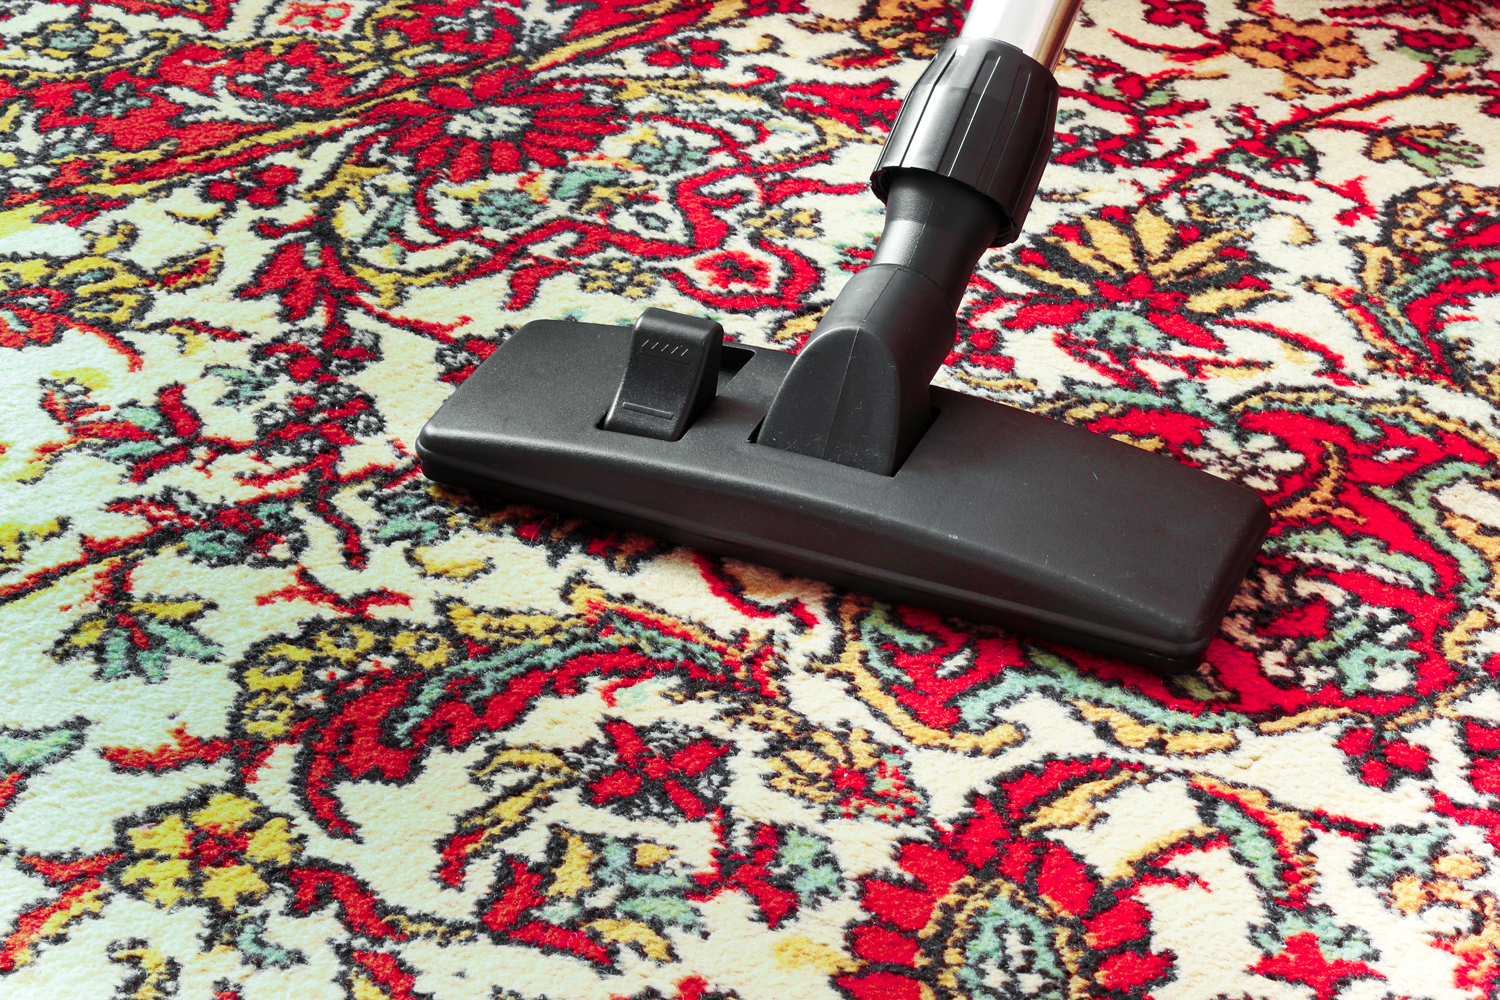 Area Rug Care requires vacuuming often